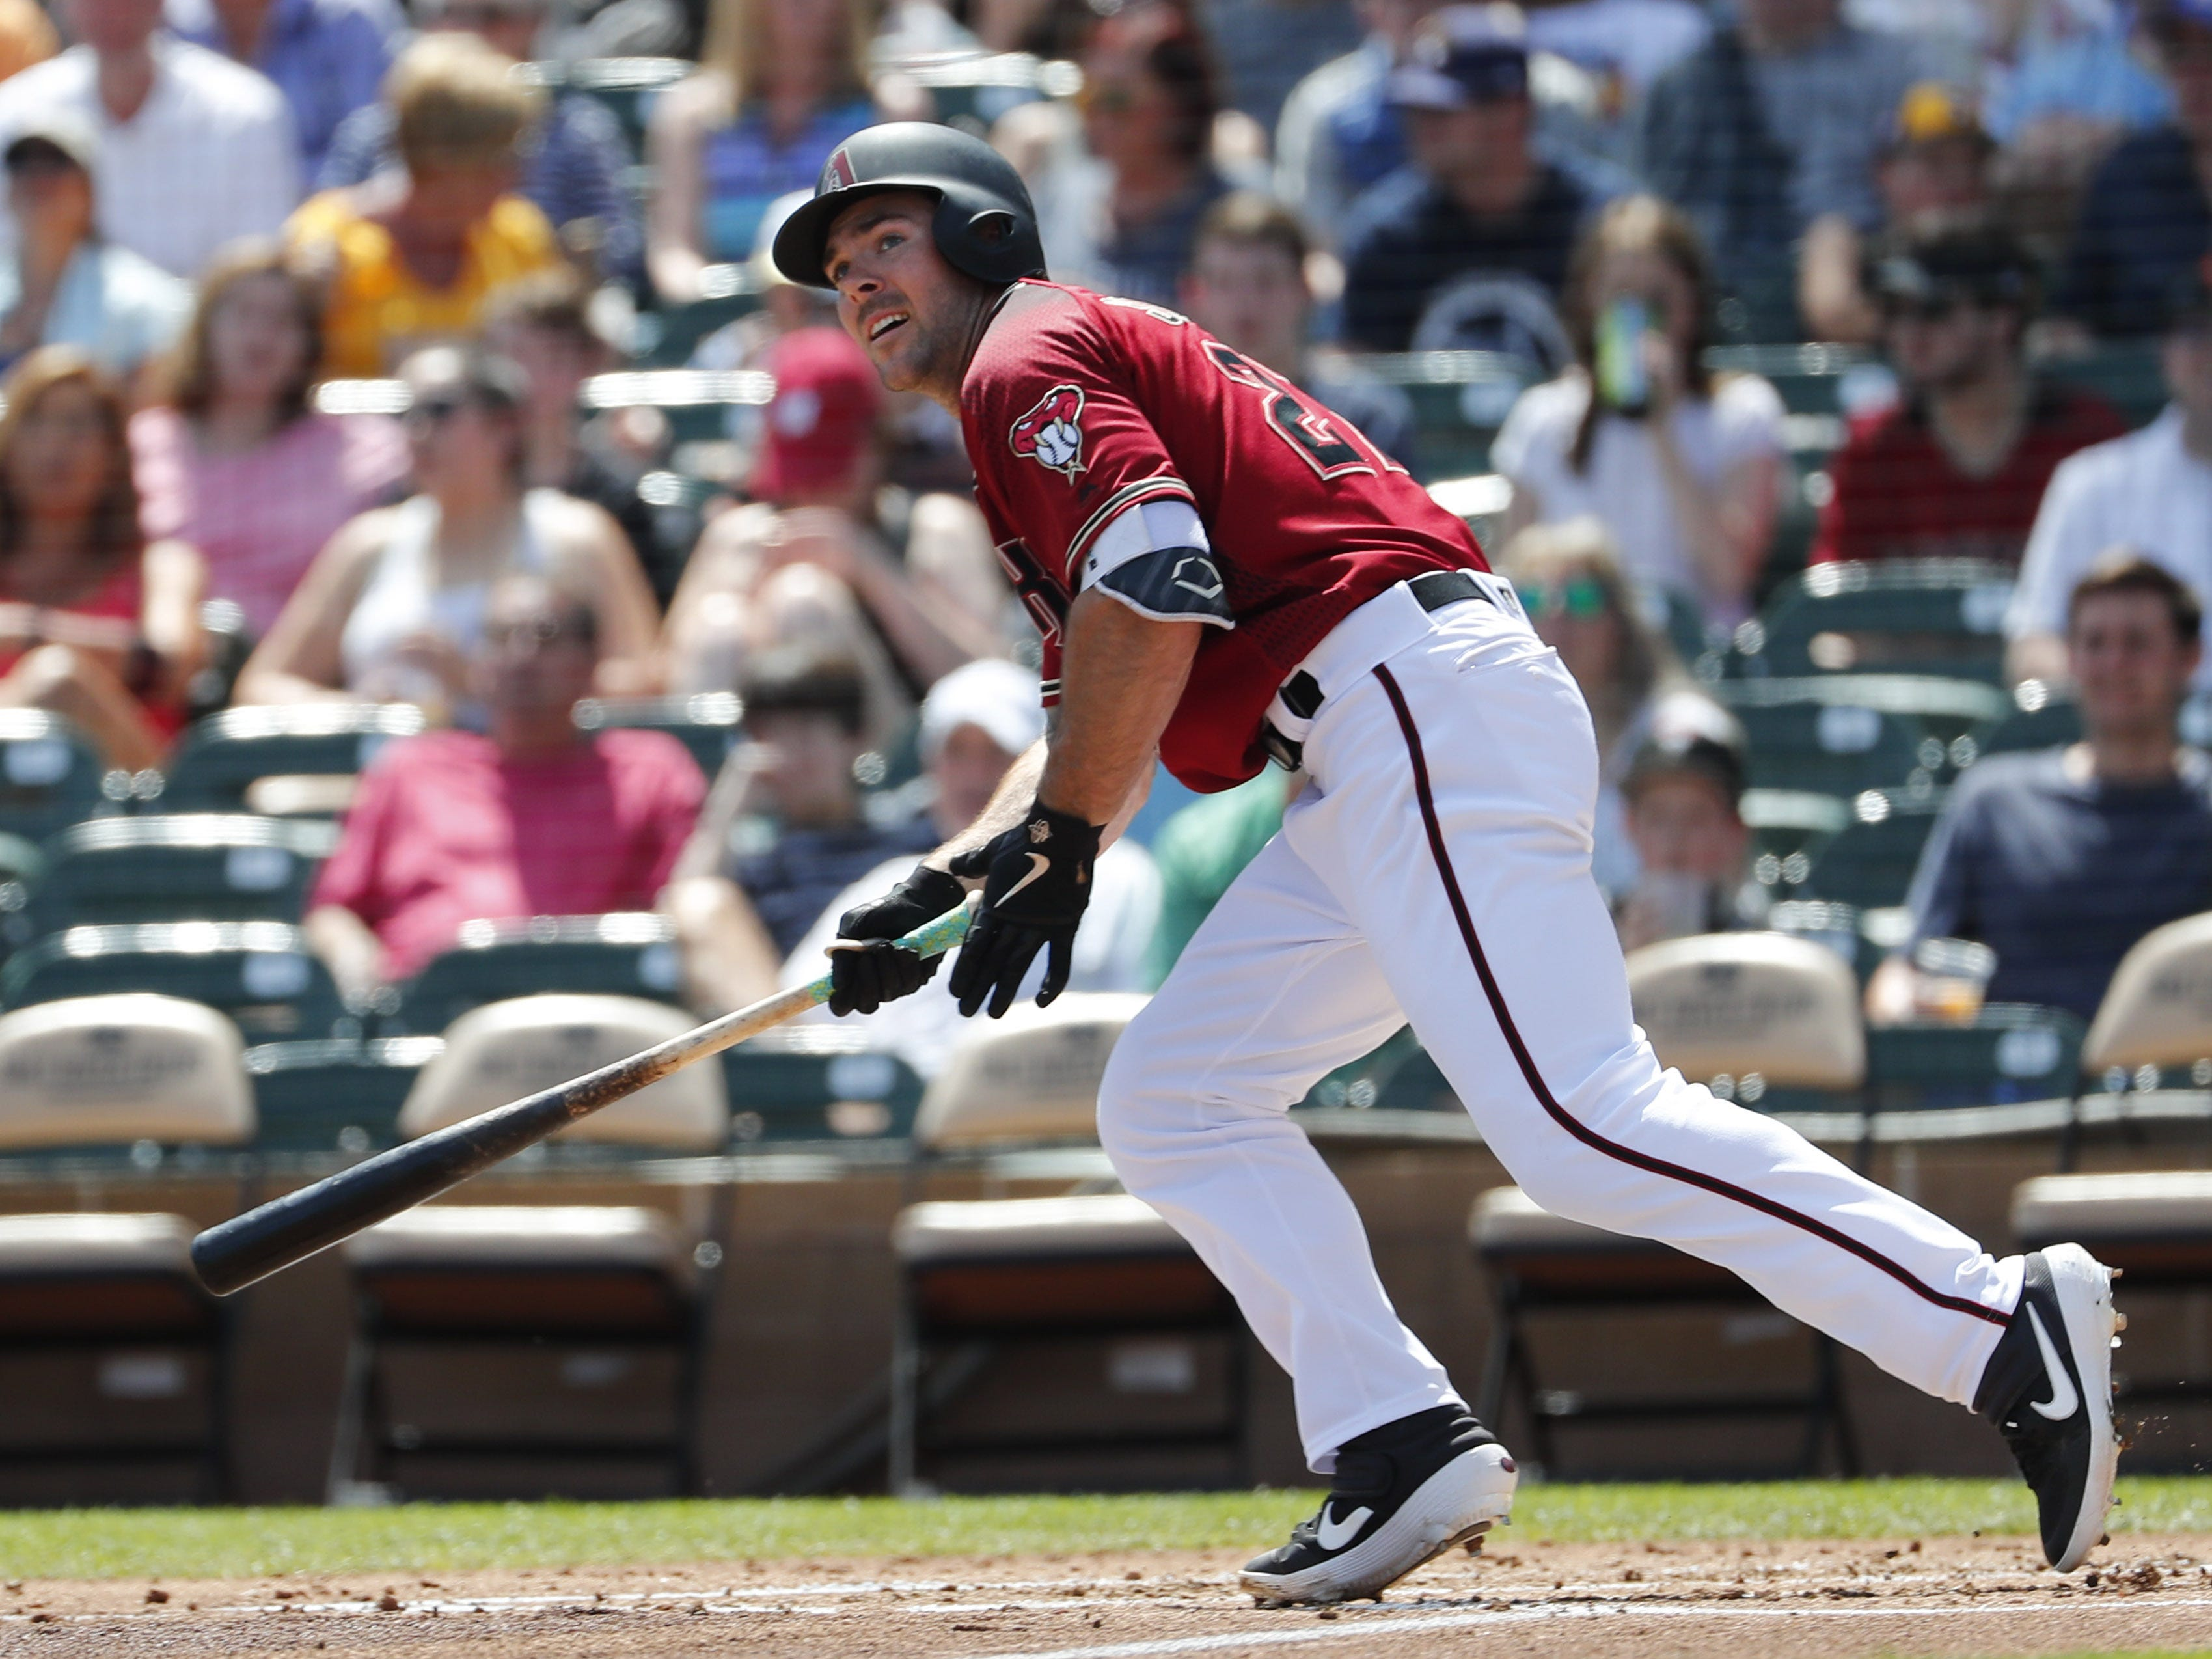 Arizona Diamondbacks' Matt Szczur hits a double against the Milwaukee Brewers during spring training at Salt River Fields at Talking Stick March 24, 2019.